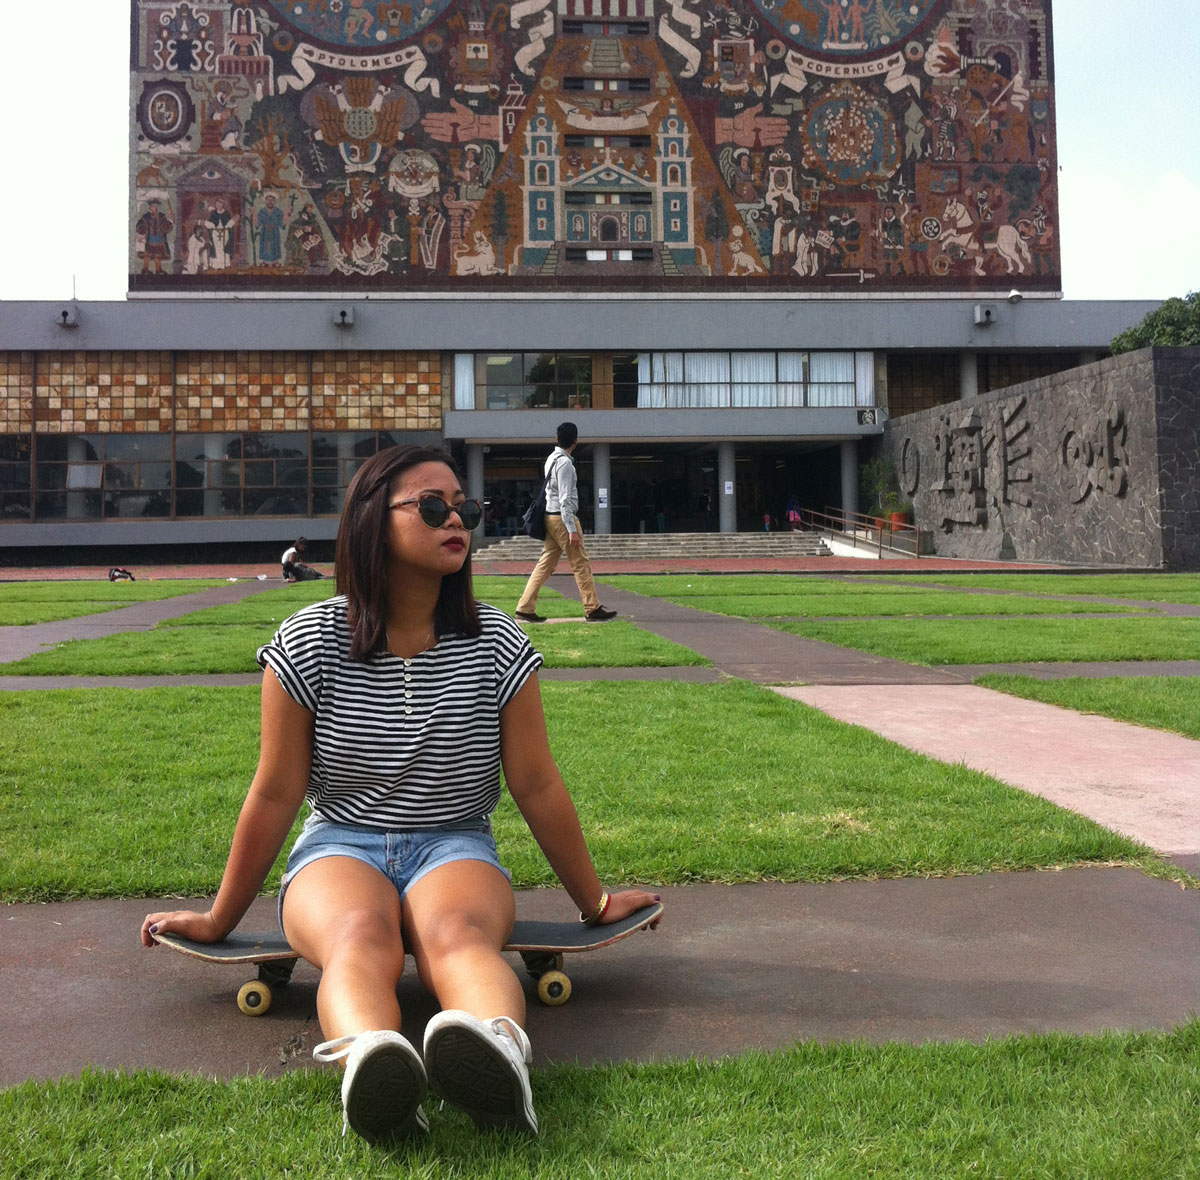 Photo of a UC student on a skateboard in front of a university building in Mexico